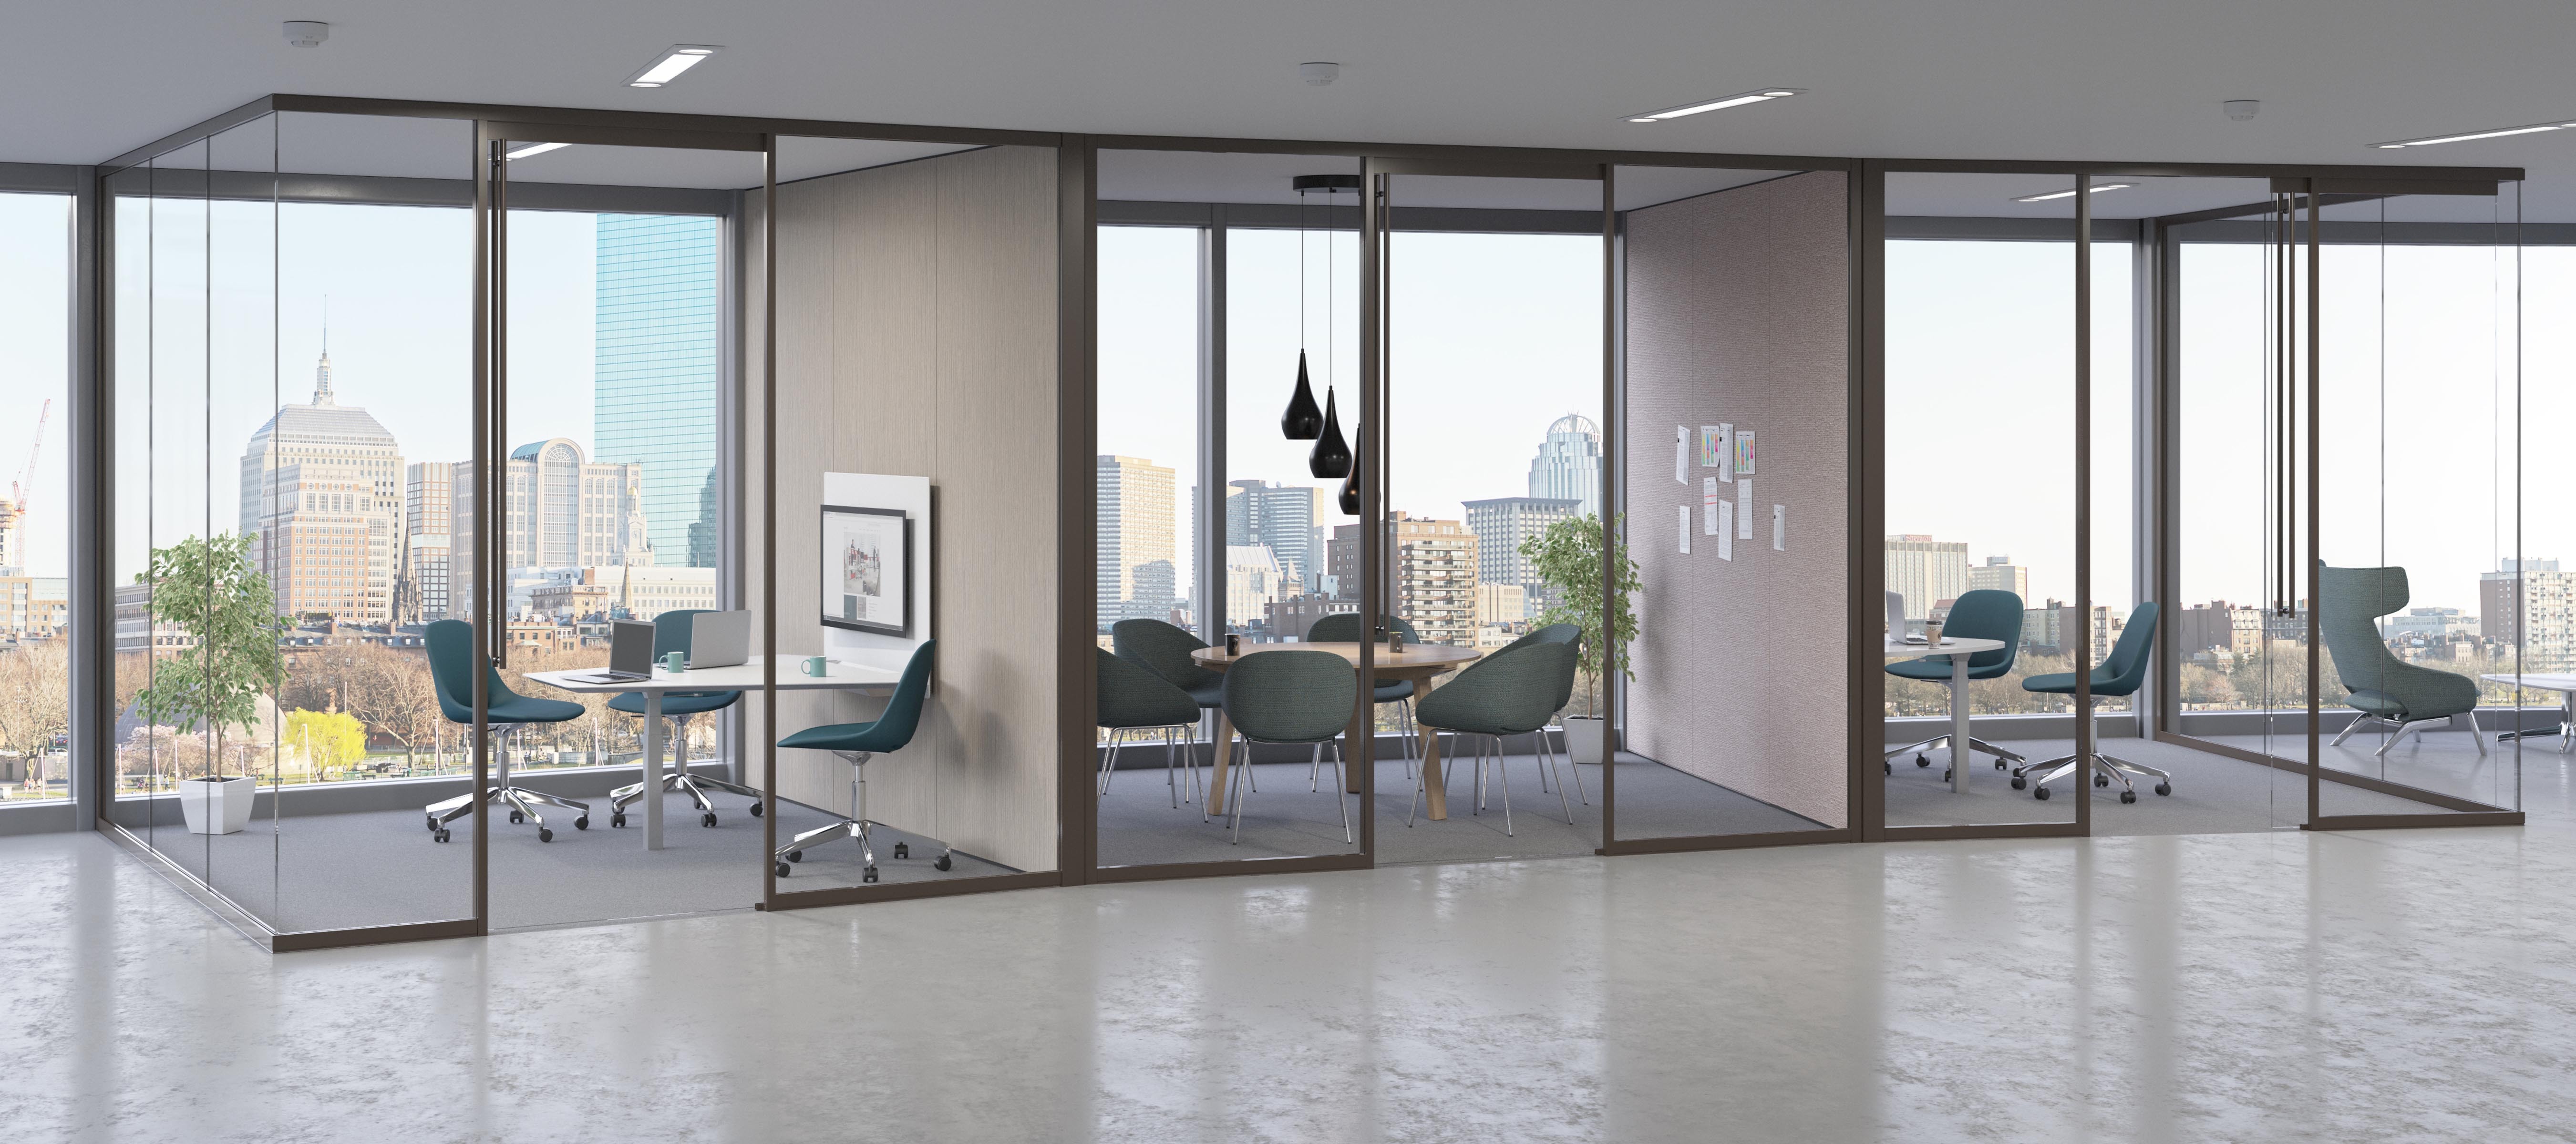 Three connected glass-fronted office spaces created by Tek Vue wall system